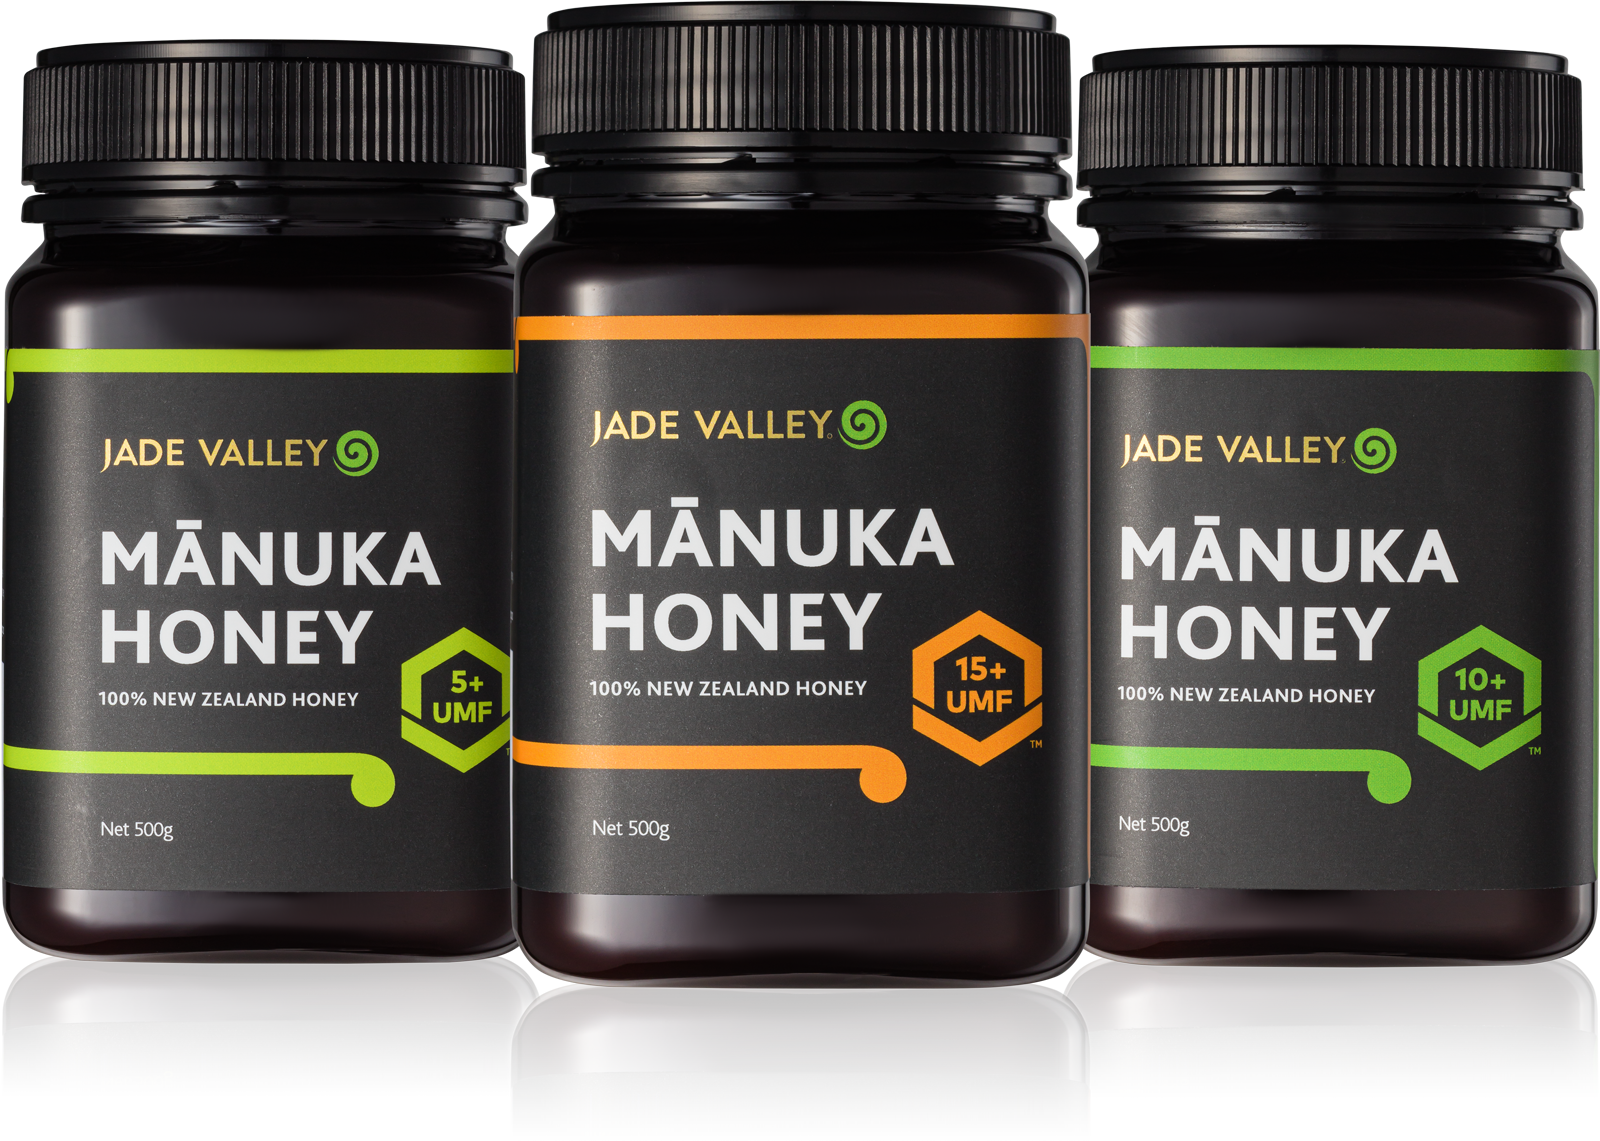 jade valley manuka honey